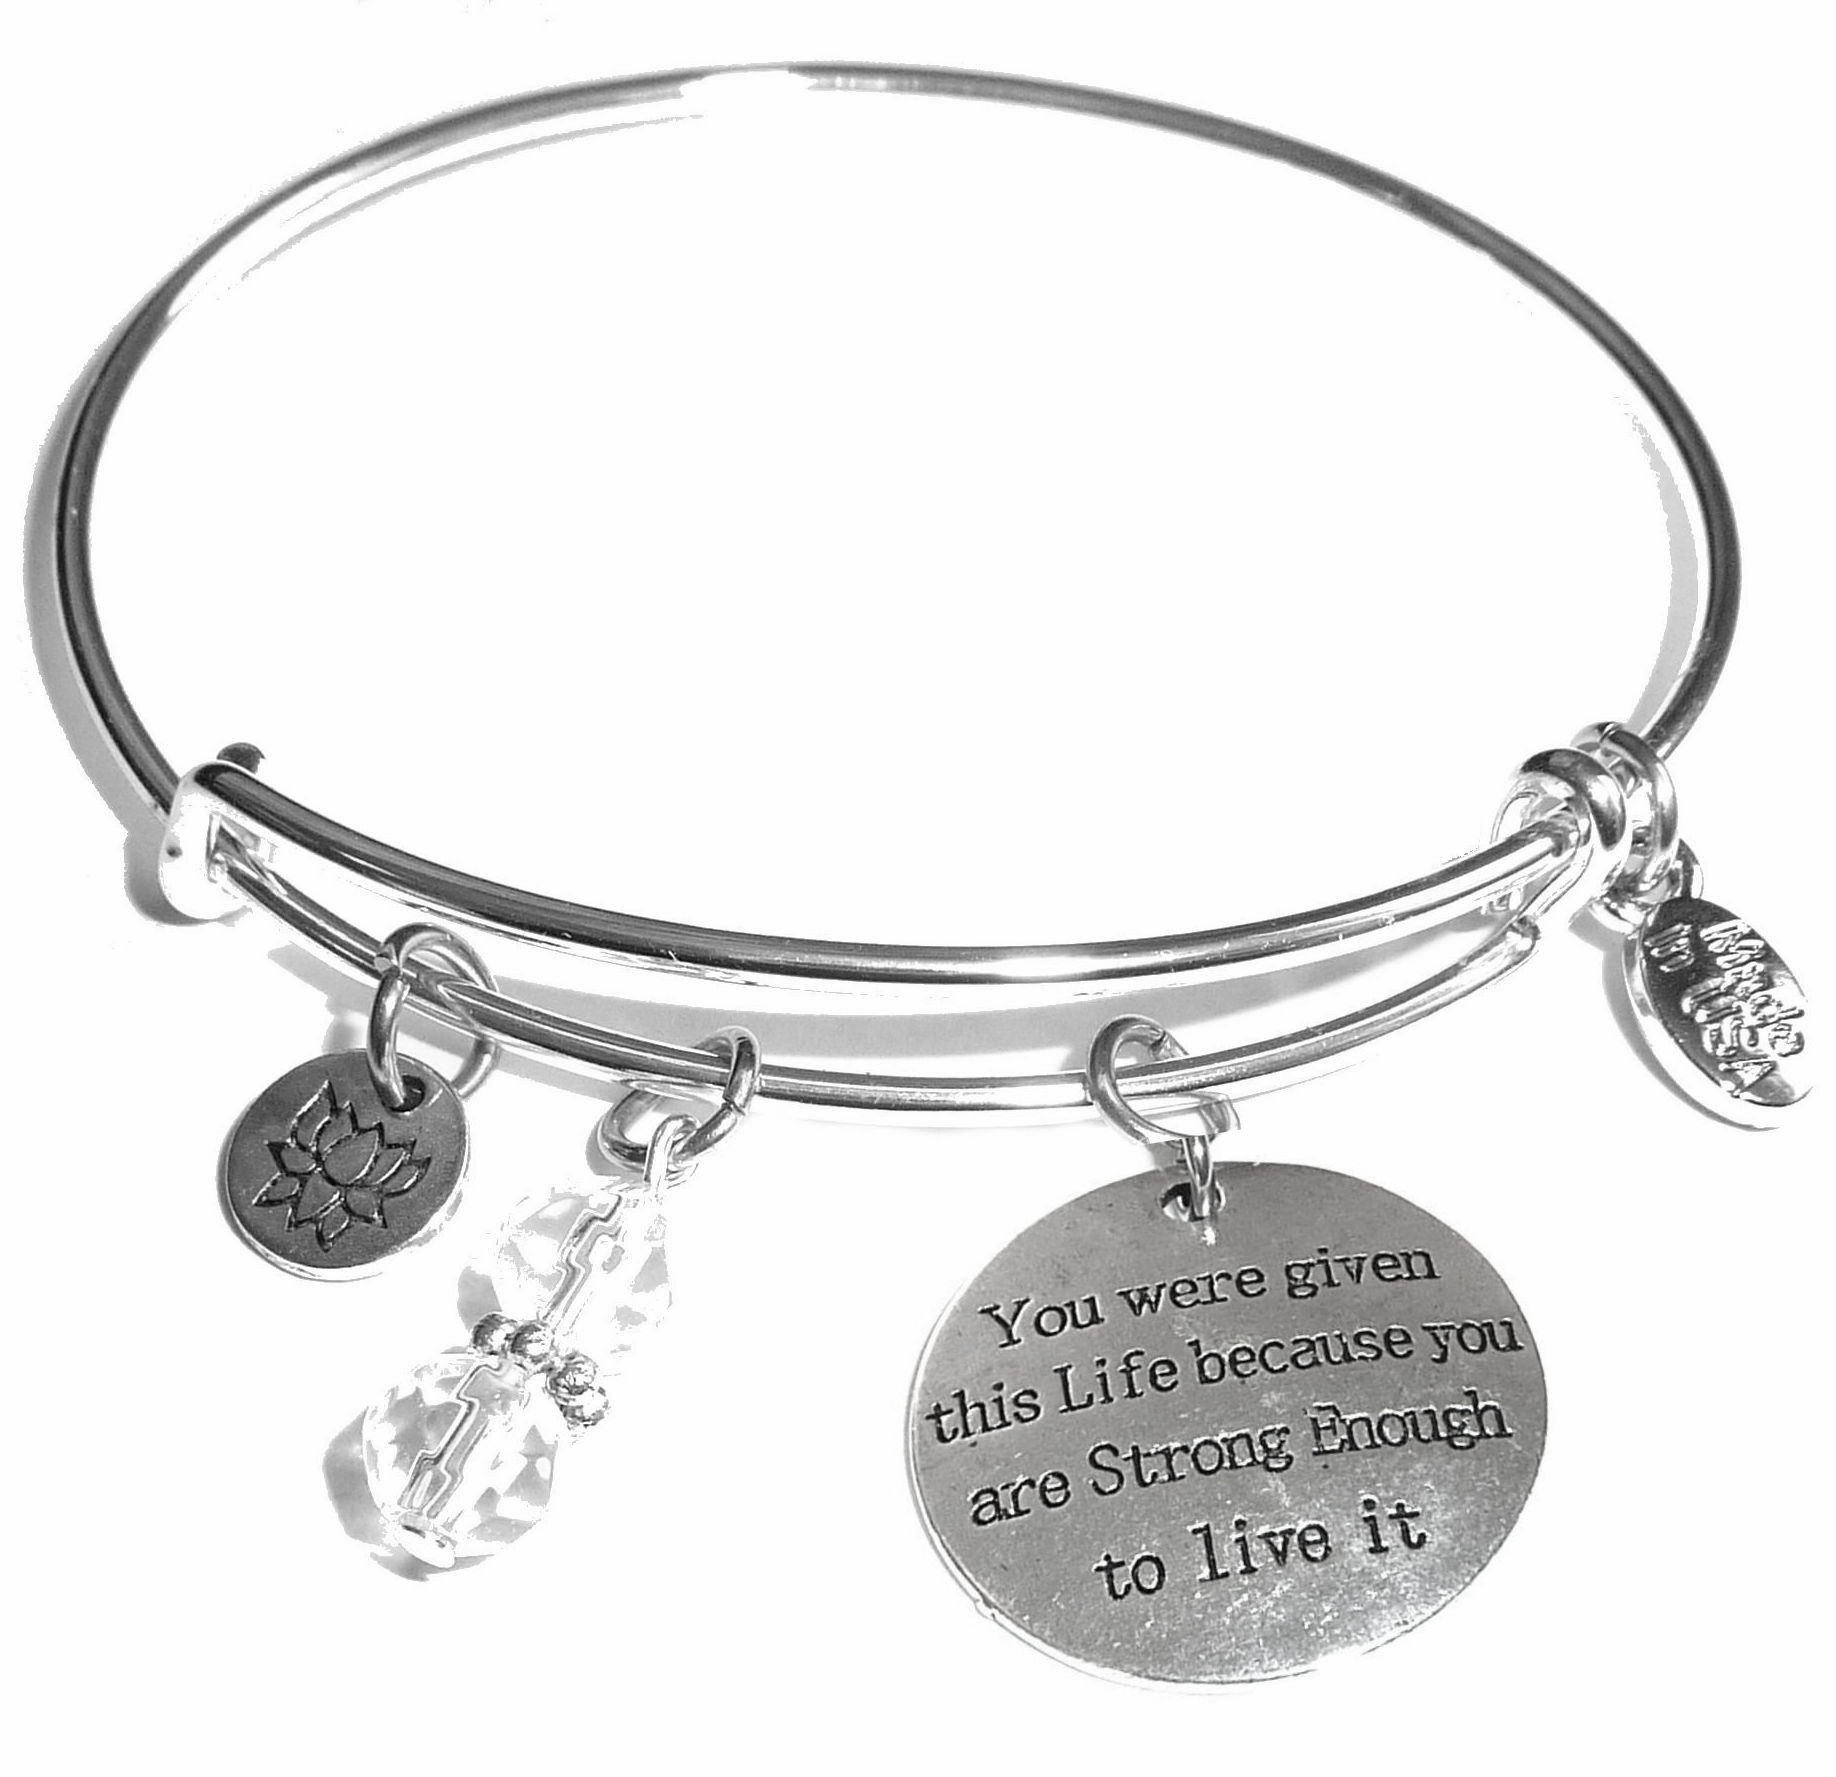 You Were Given This Life Message Bangle Bracelet Hidden Hollow Beads